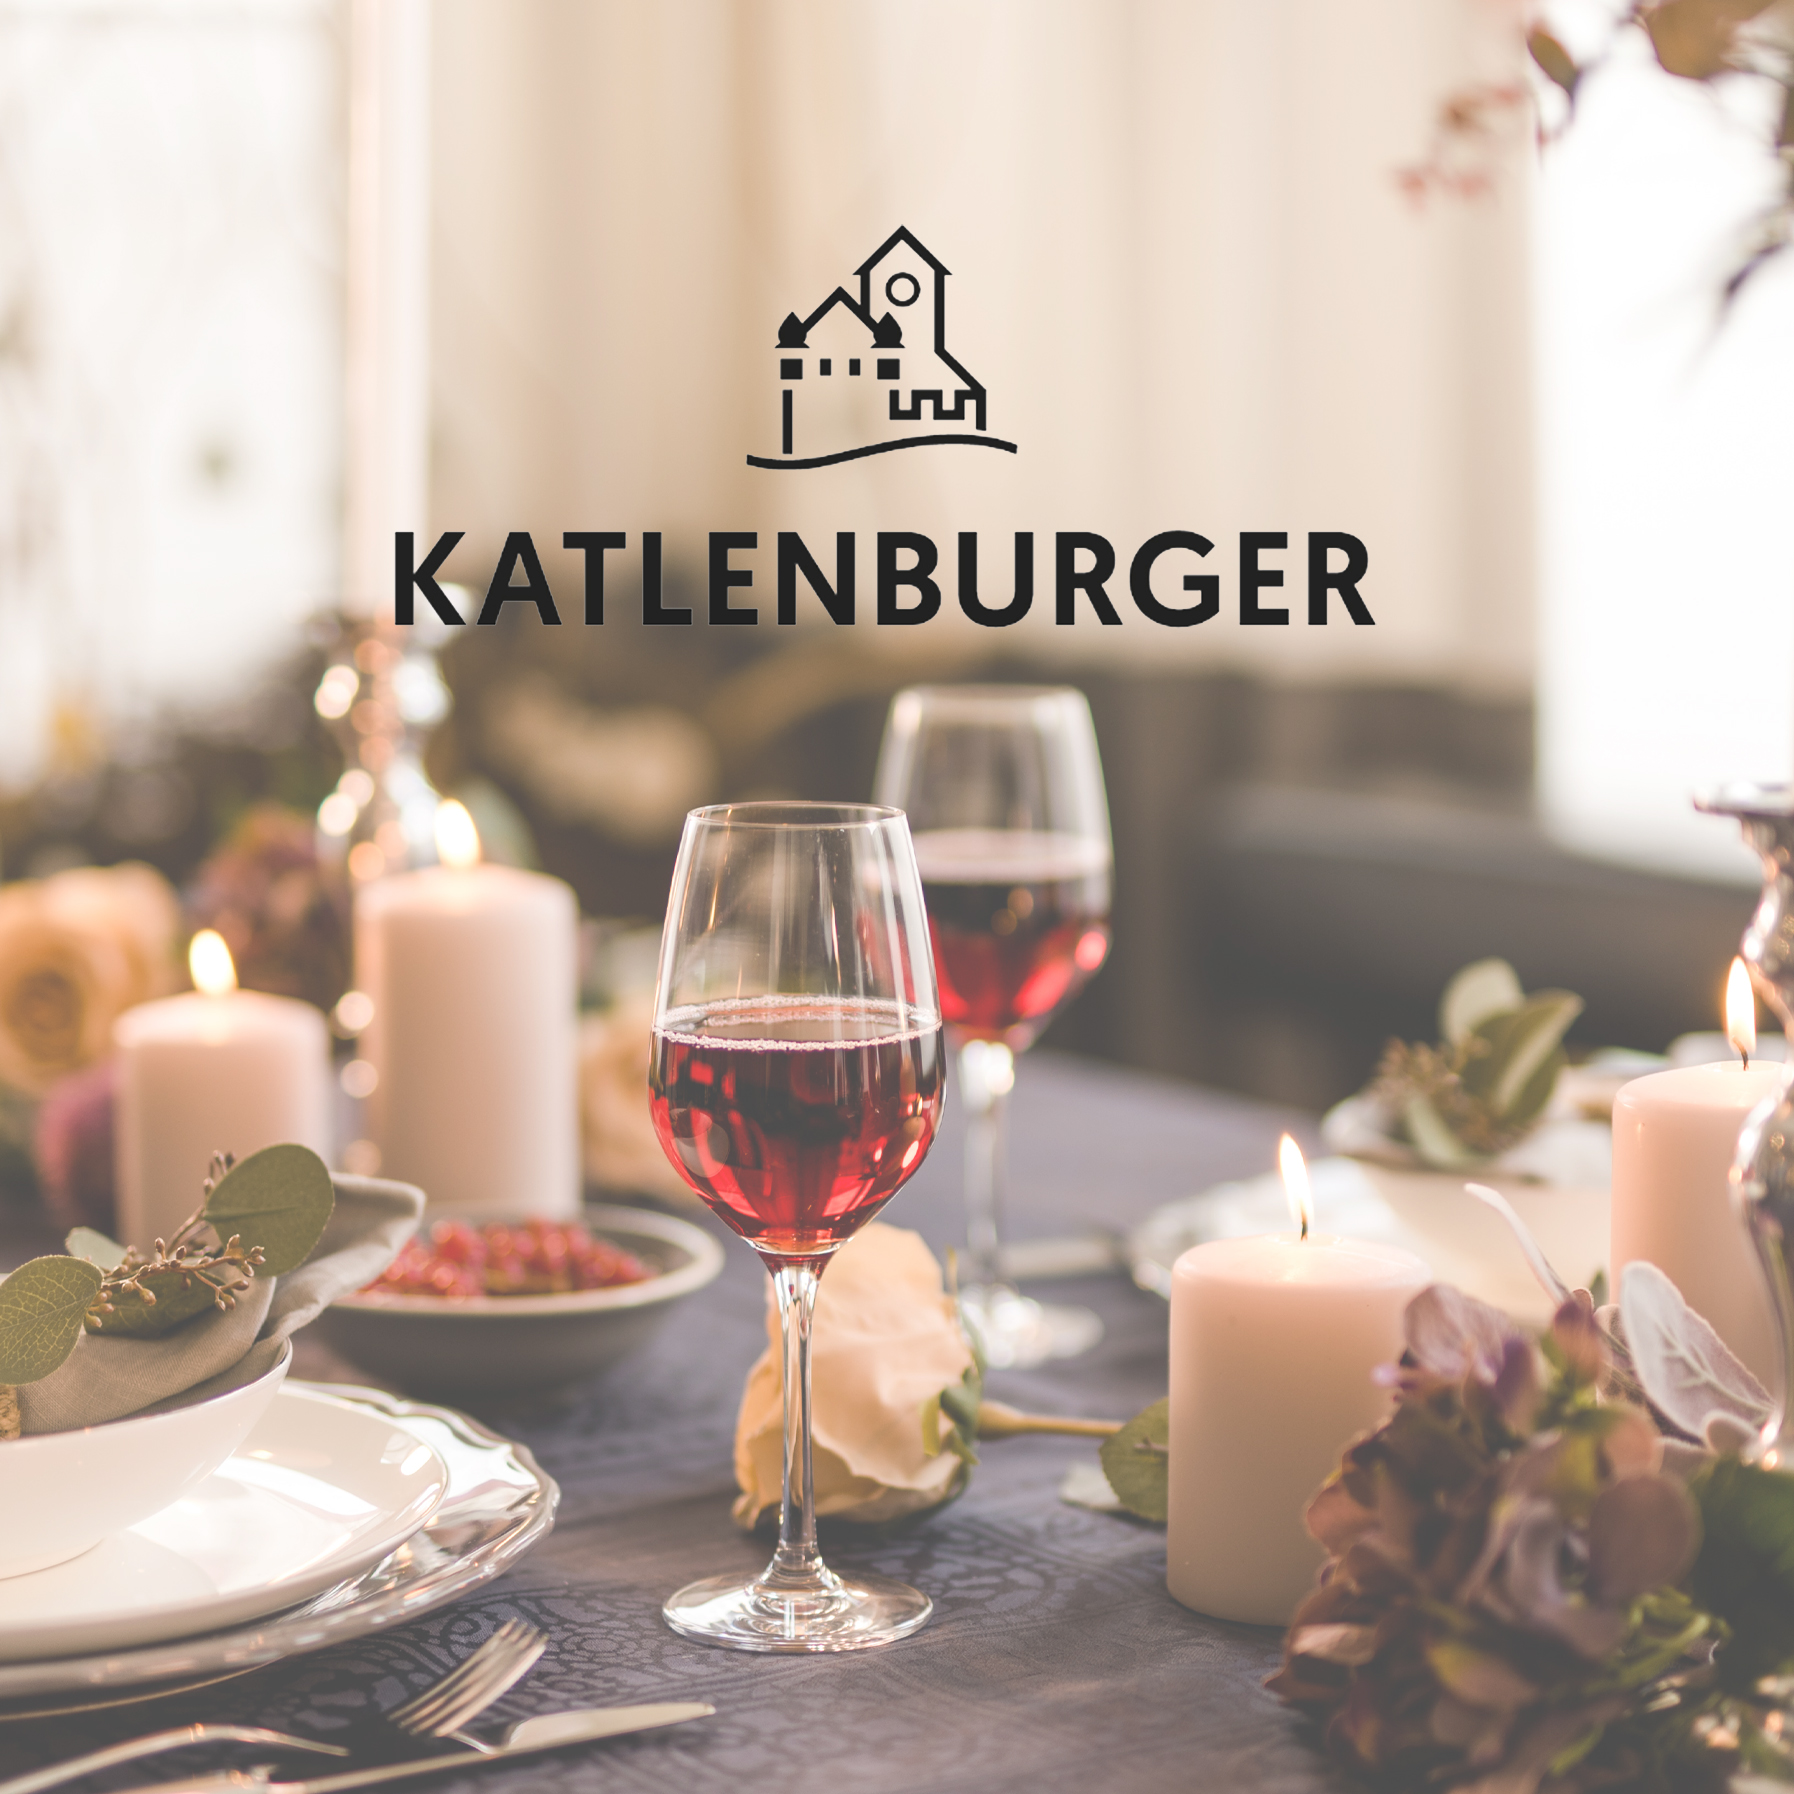 KATLENBURGER KELLEREI GMBH & CO.KG